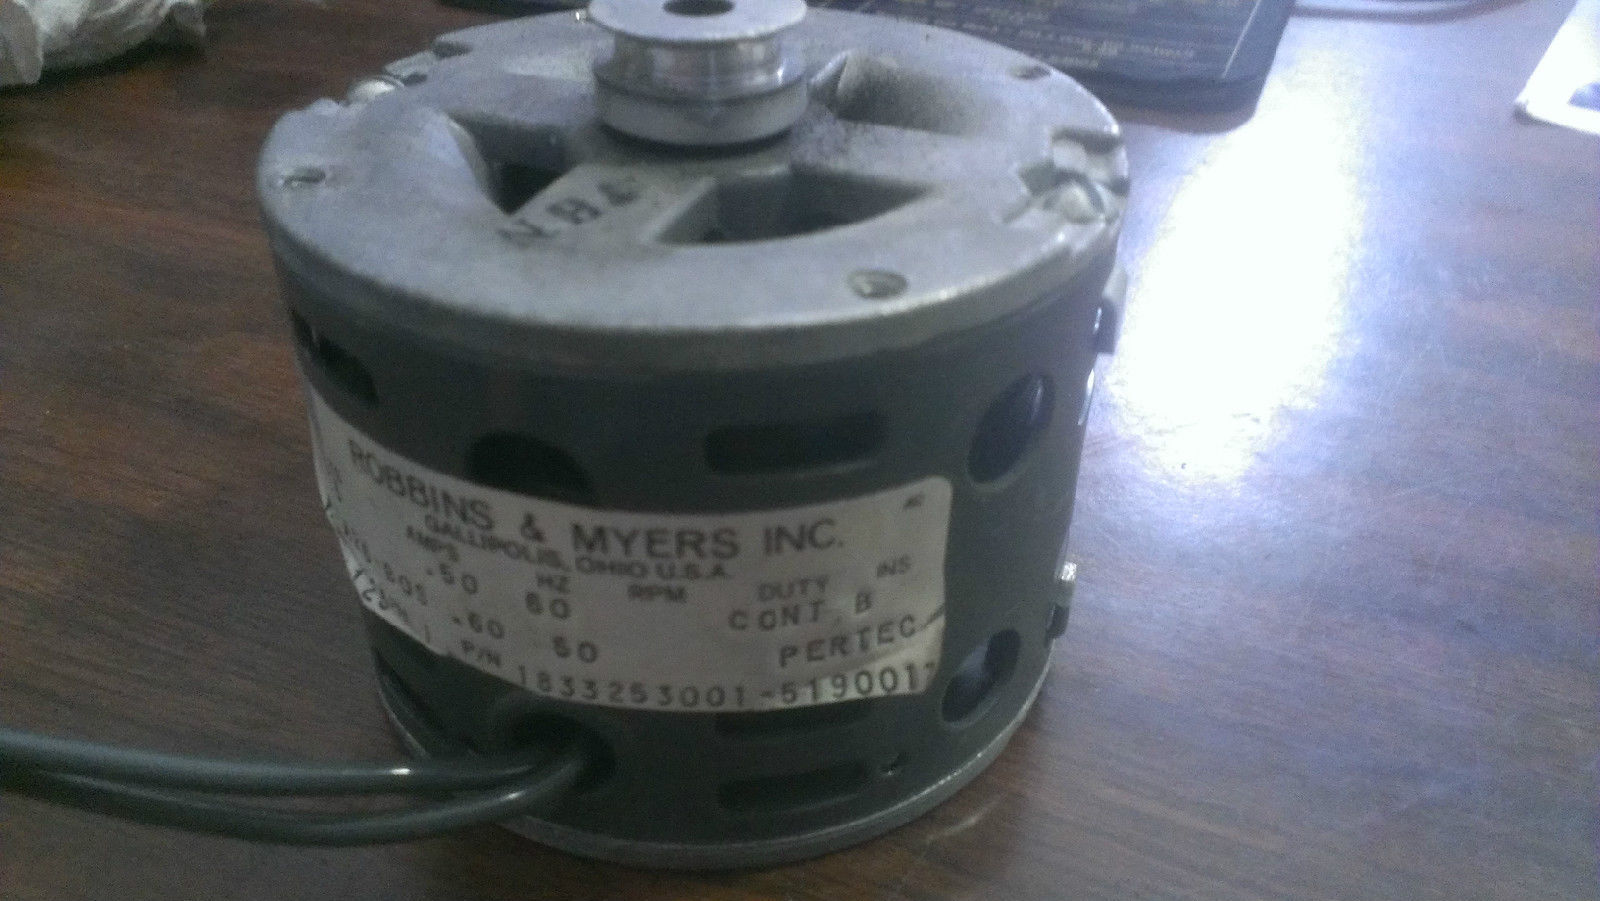 Primary image for K-A26-BOS, Robbins & Myers, 115V 0.6A 60Hz Motor 1/125HP 1650RPM